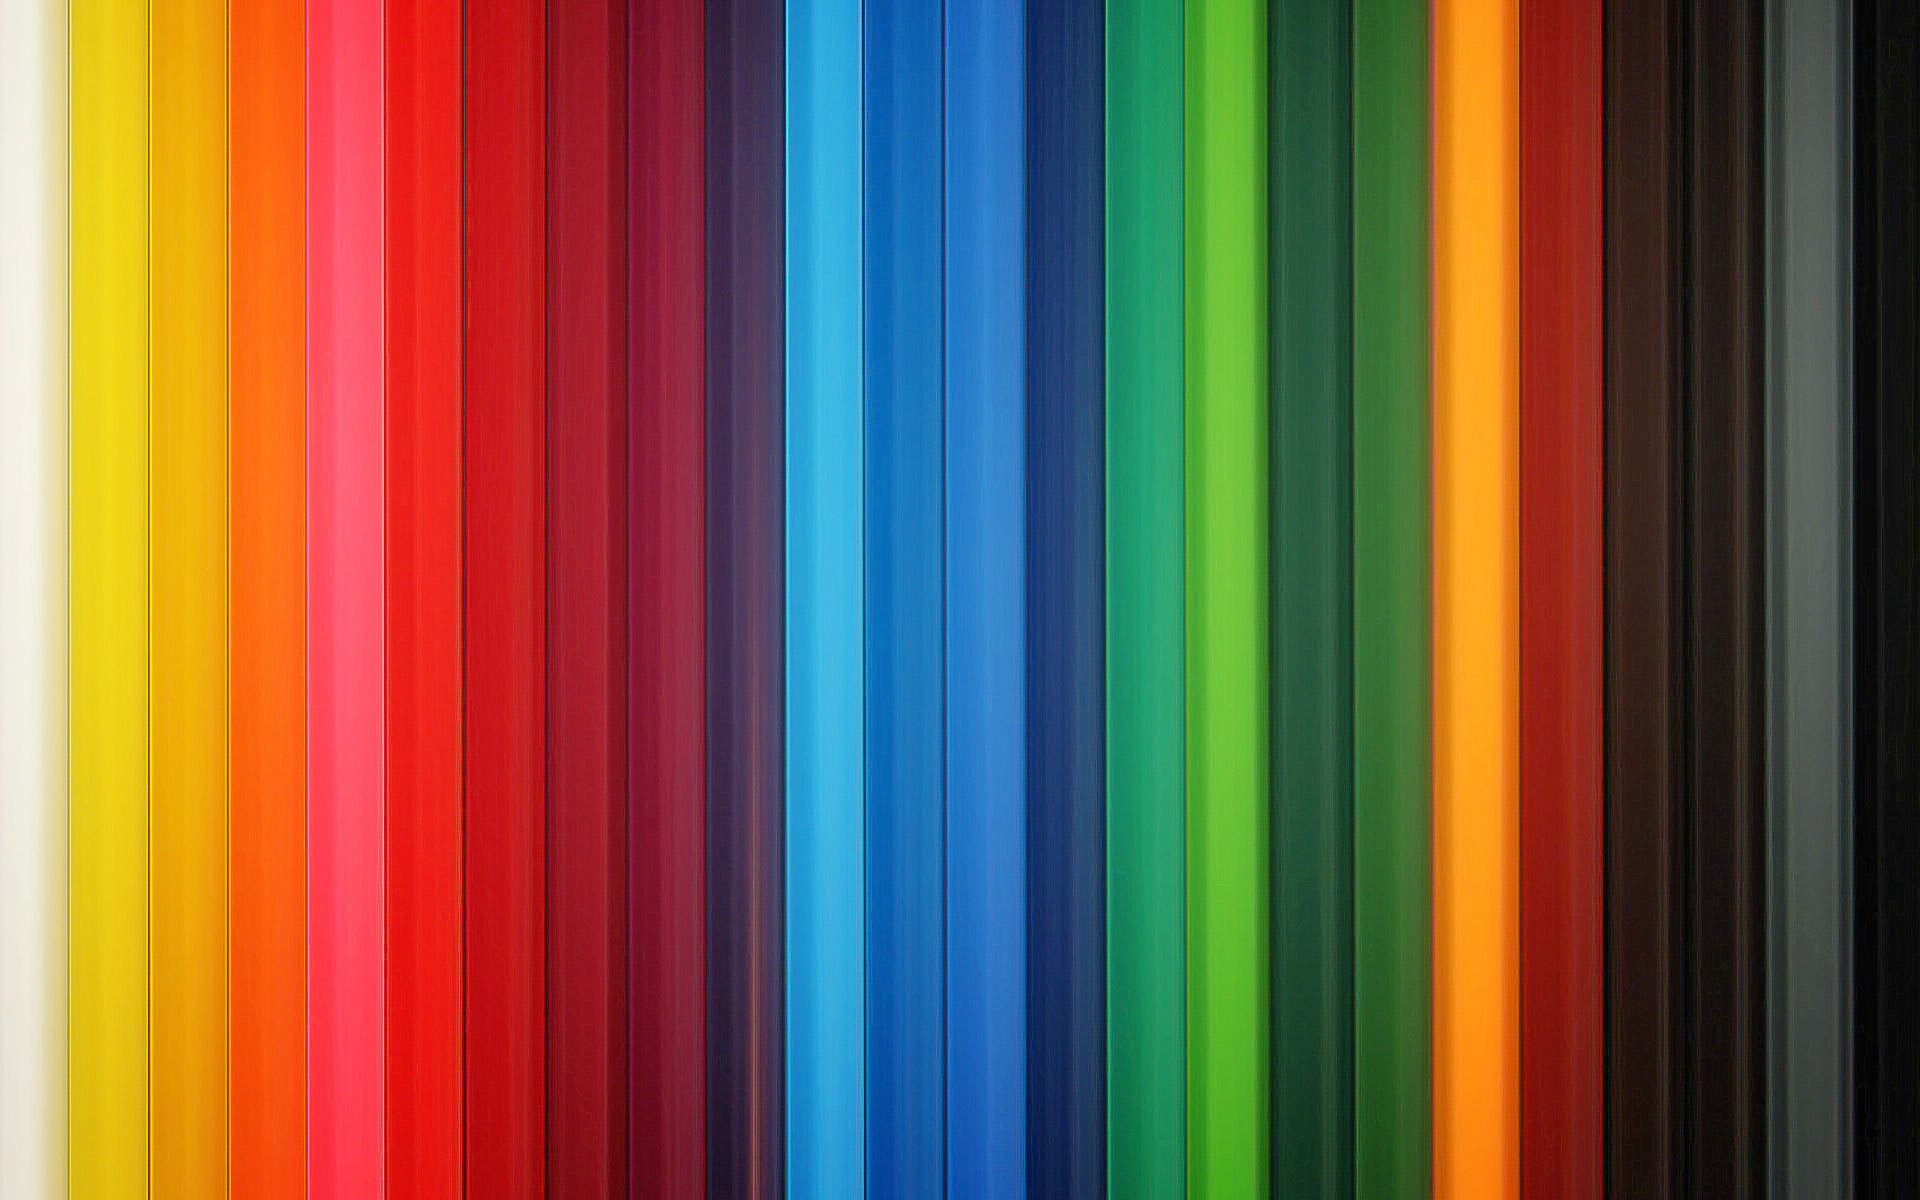 Colorful Desktop Backgrounds | Colorful For Desktop – HD Wallpapers | Paper  Crafting Backgrounds And Printables | Pinterest | Wallpaper, Hd wallpaper  and …